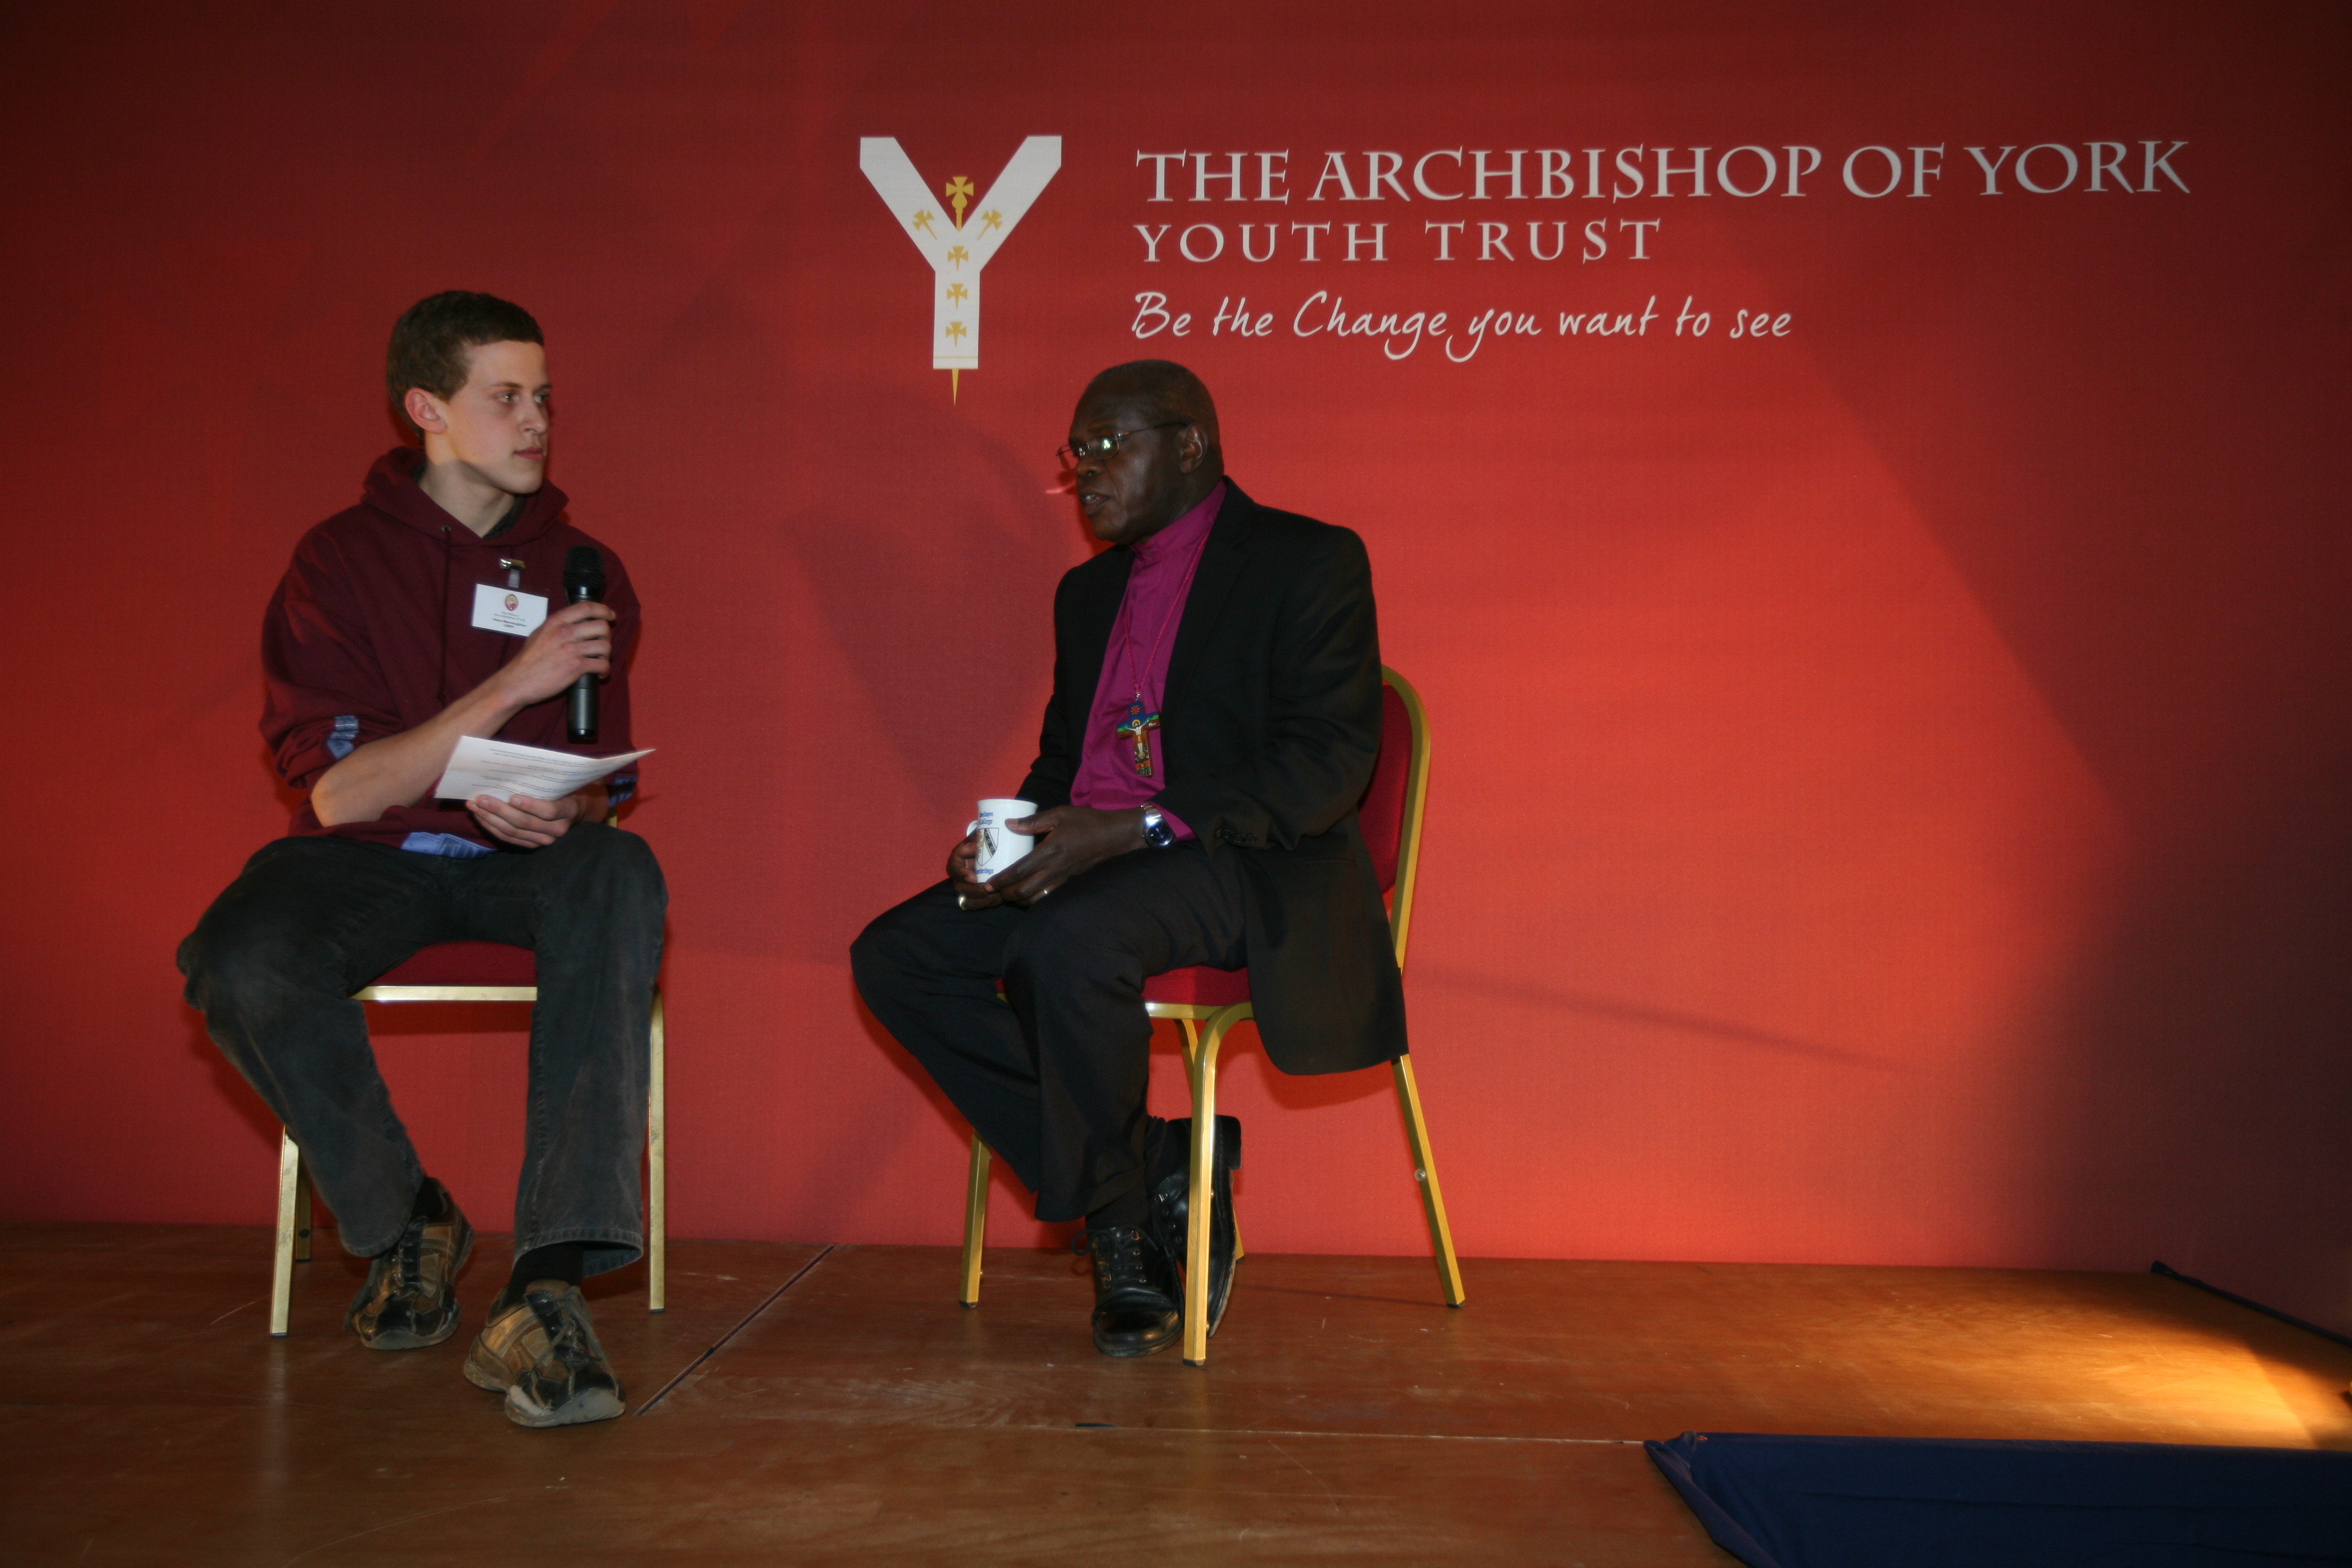 Dr. John Sentamu and Archbishop Desmond Tutu are to jointly launch the Archbishop of York Youth Trust